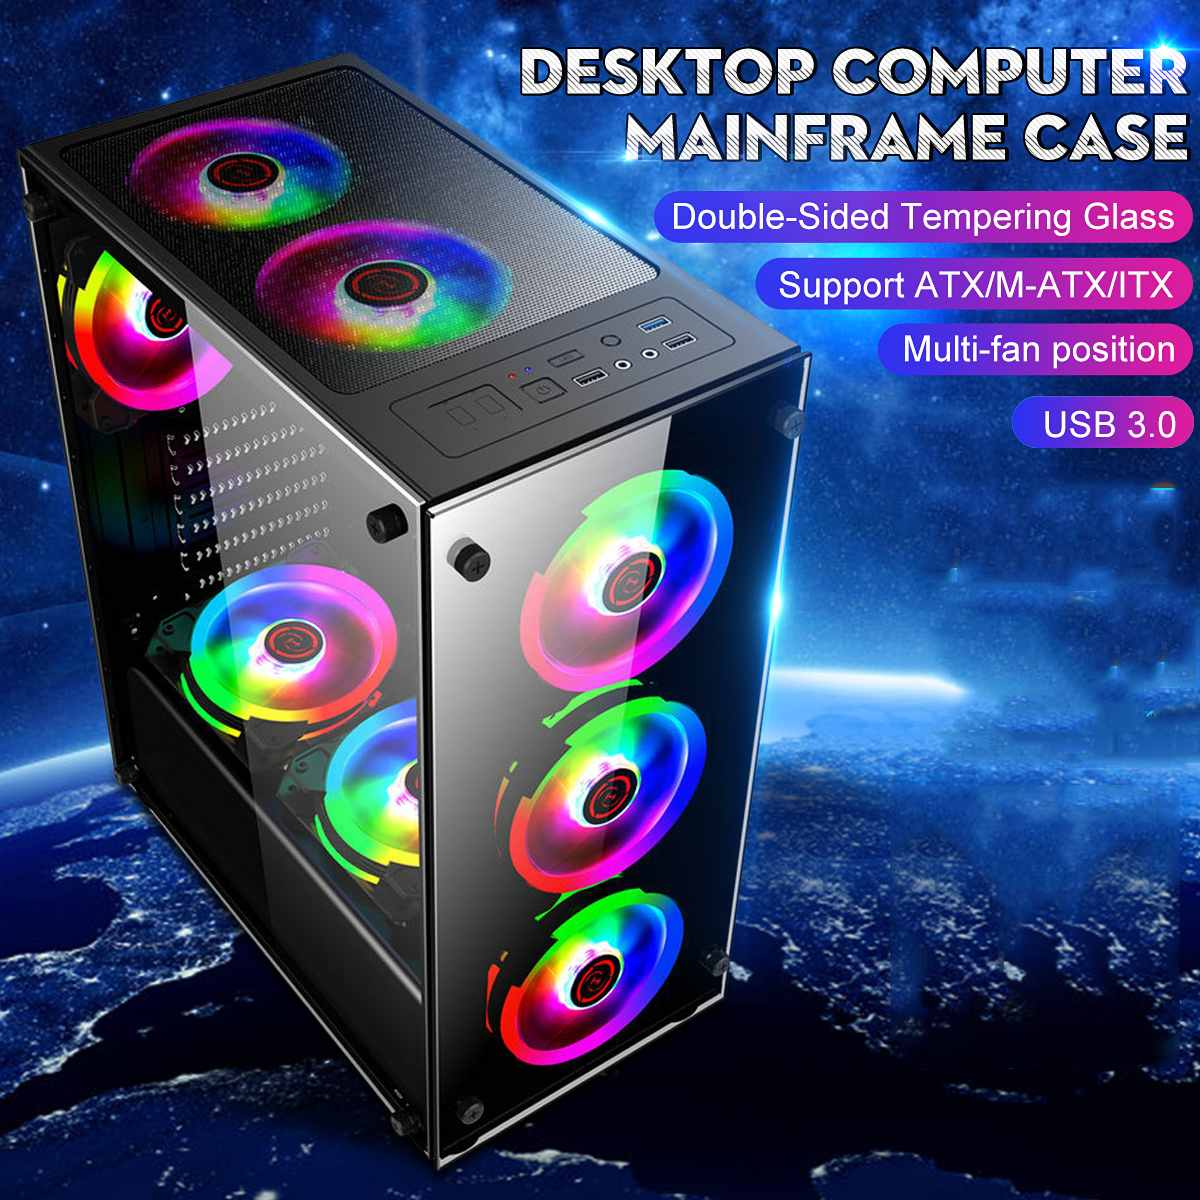 350x290x410mm Desktop Transparent Glass Gaming Computer PC Case Gamer Cooling For ATX/ m-atx/mini-itx Motherboard Support 8 Fans